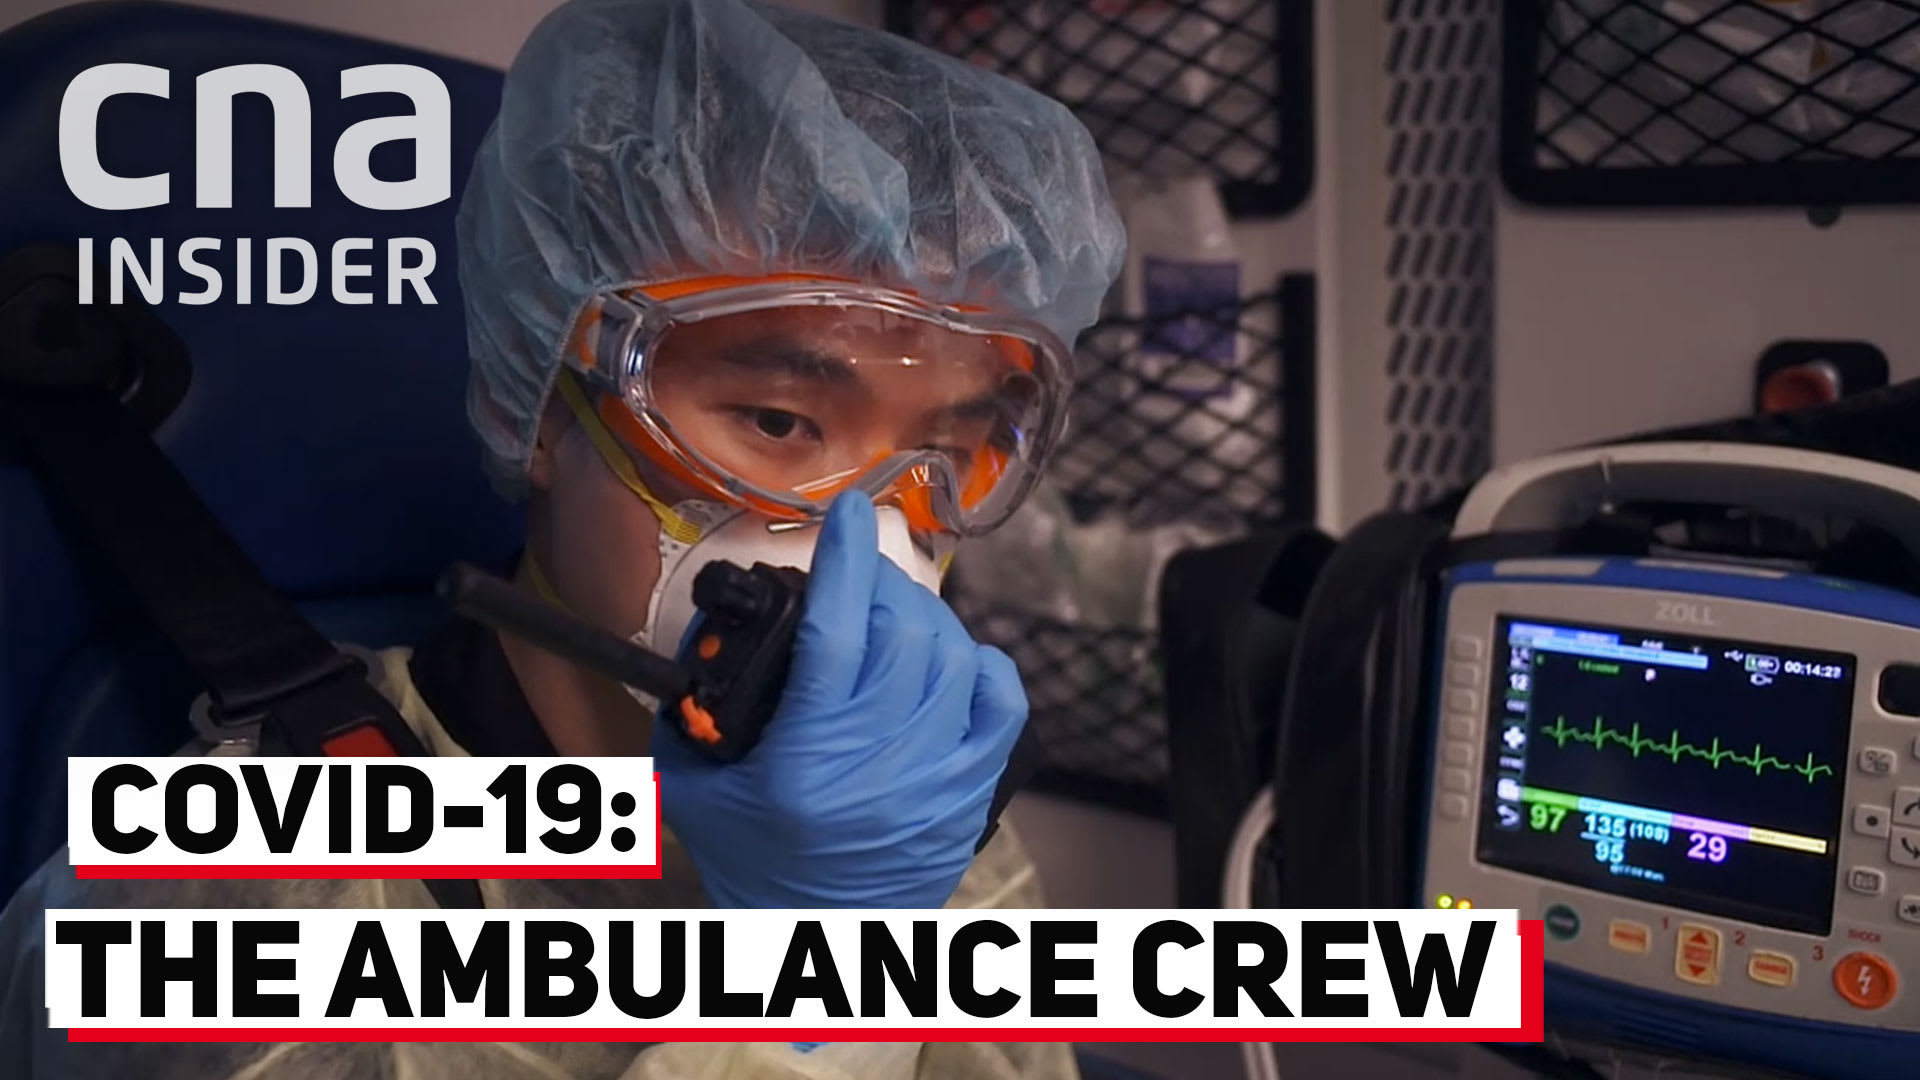 Life on the frontline: the SCDF ambulance crew